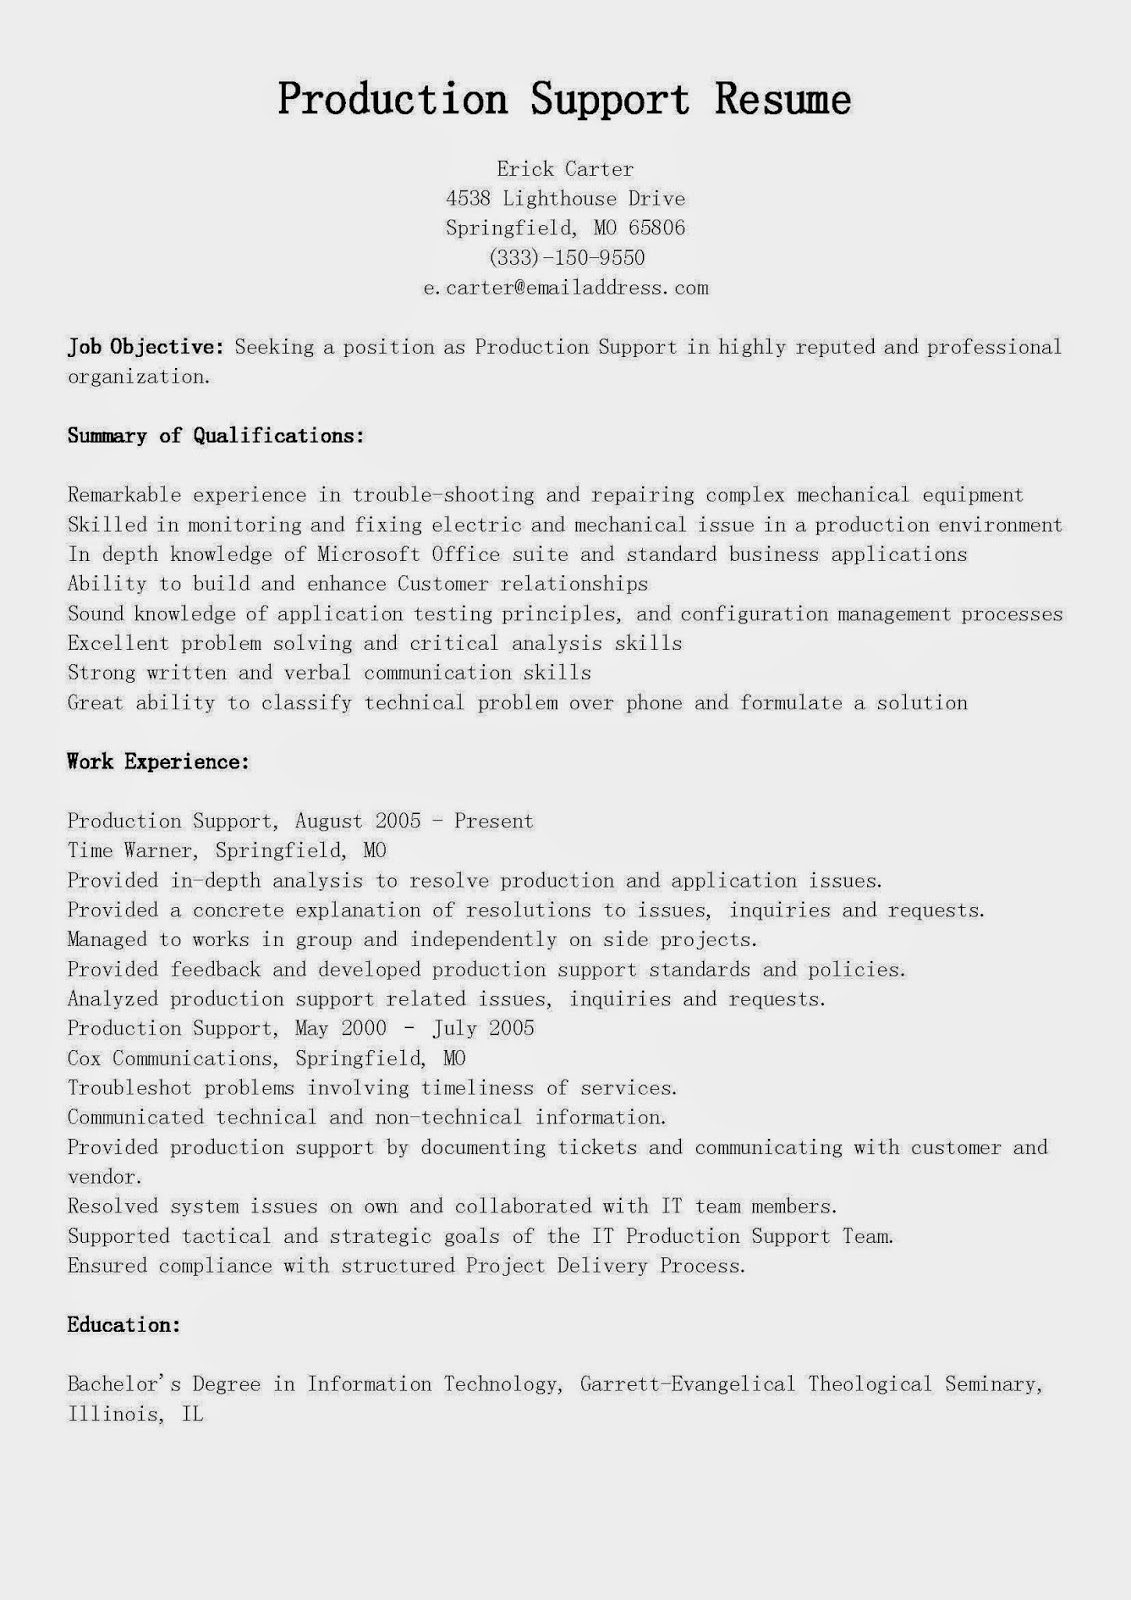 Resume samples production support resume sample for Sample resume for 2 years experience in mainframe